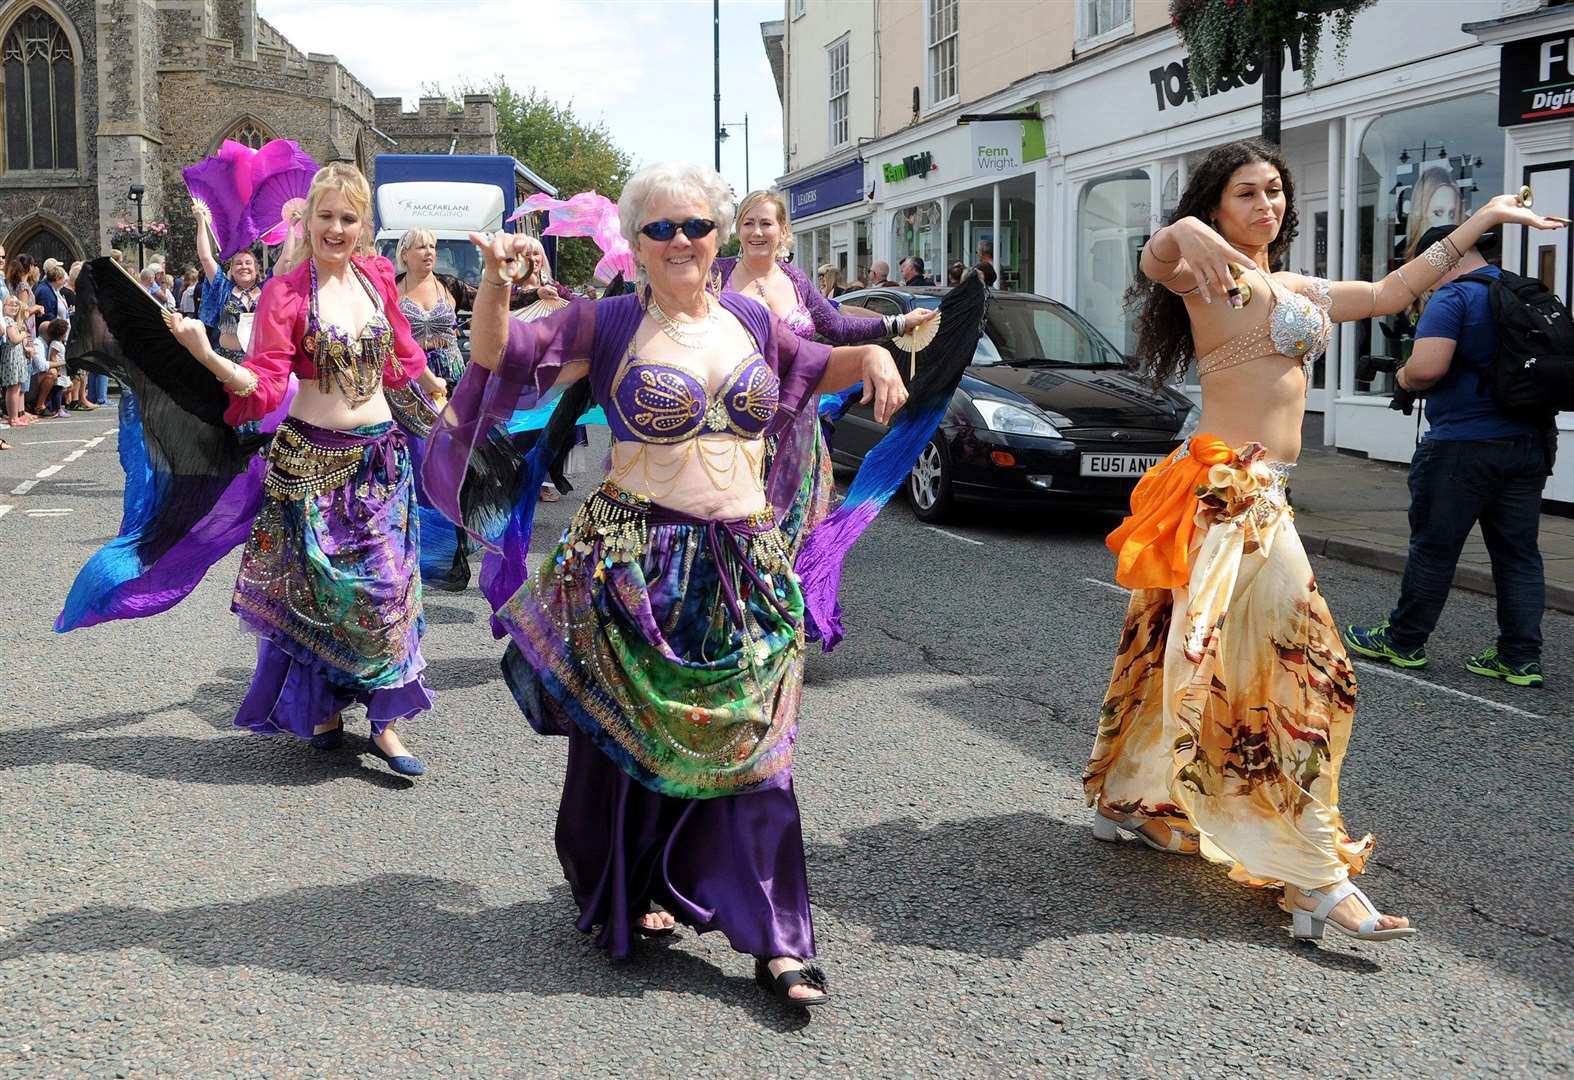 Huge crowds expected for Sudbury Carnival this weekend